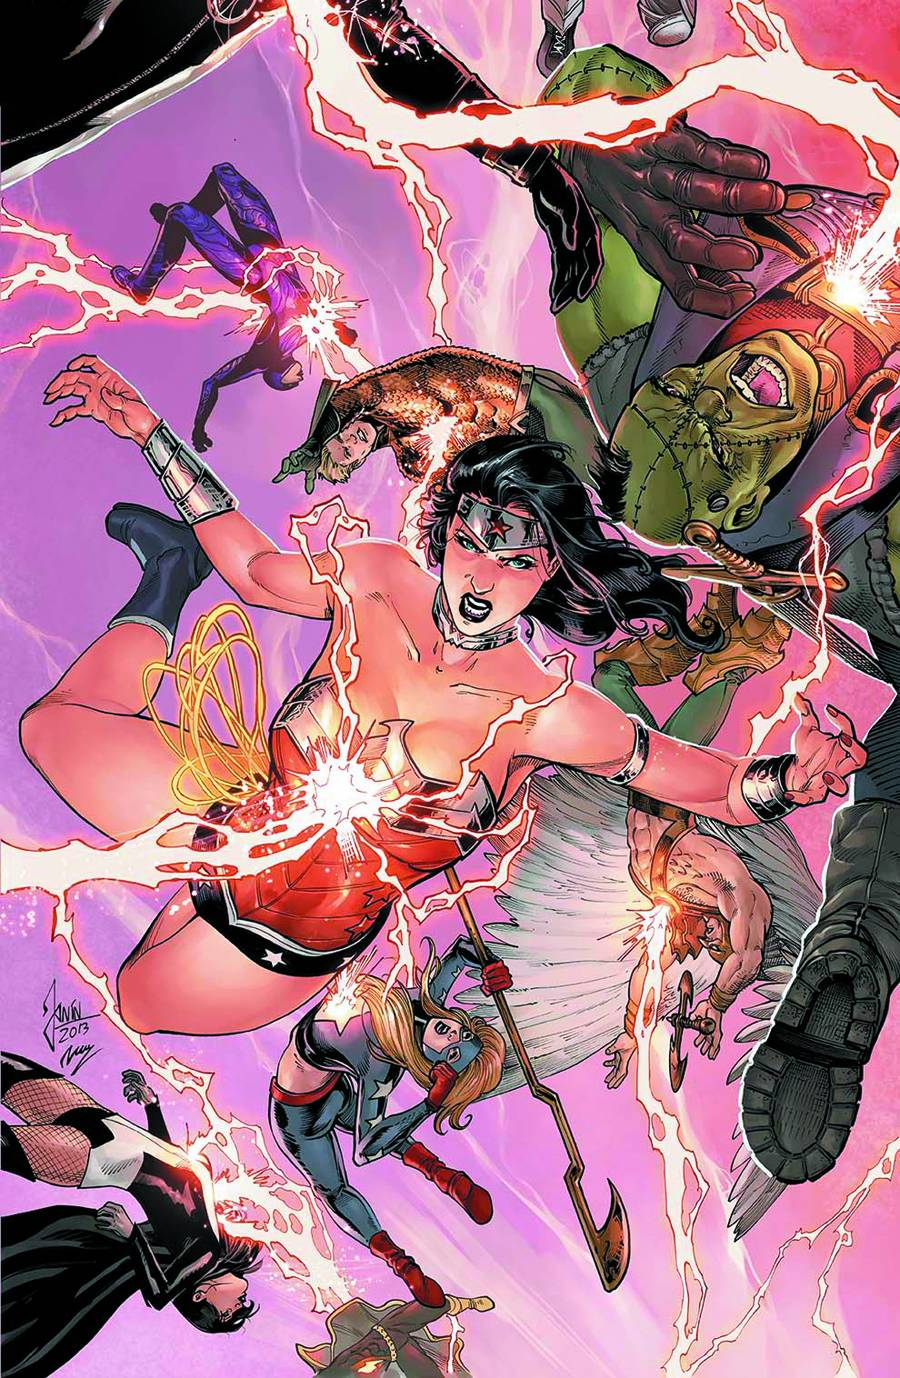 Justice League Dark Vol 1 23 Textless Variant.jpg